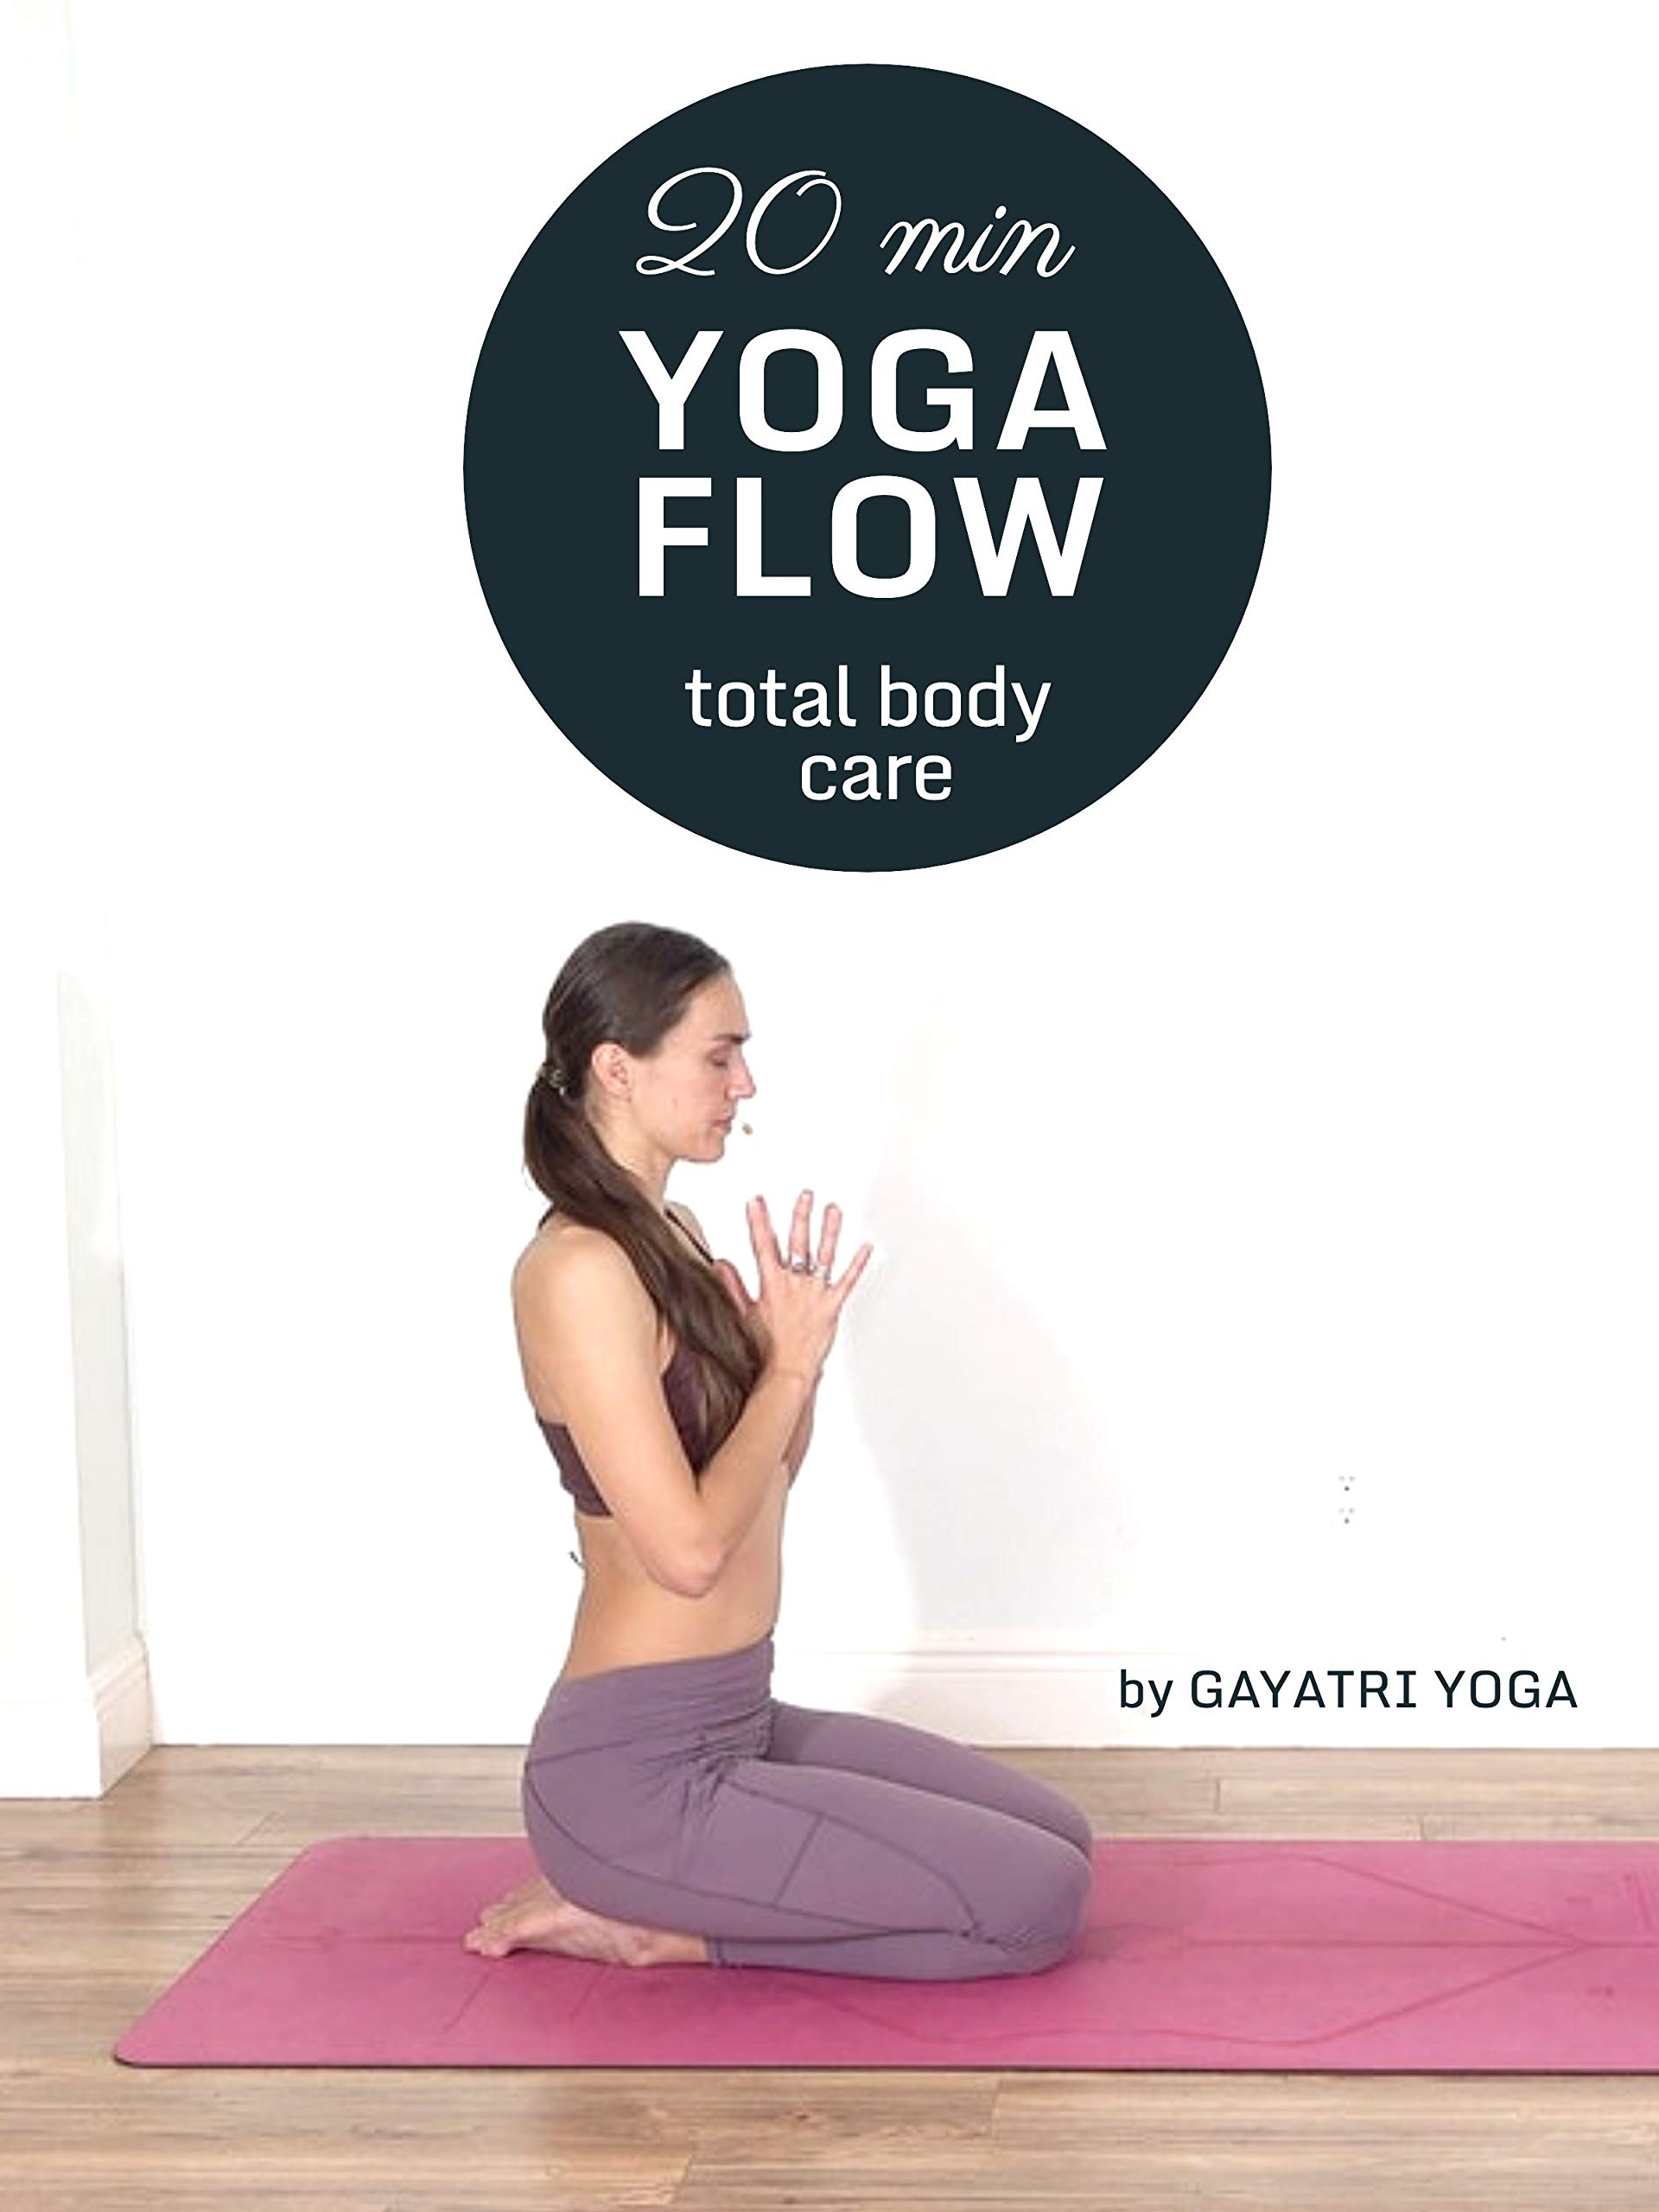 20 Min Yoga Flow - Total Body Care by Gayatri Yoga